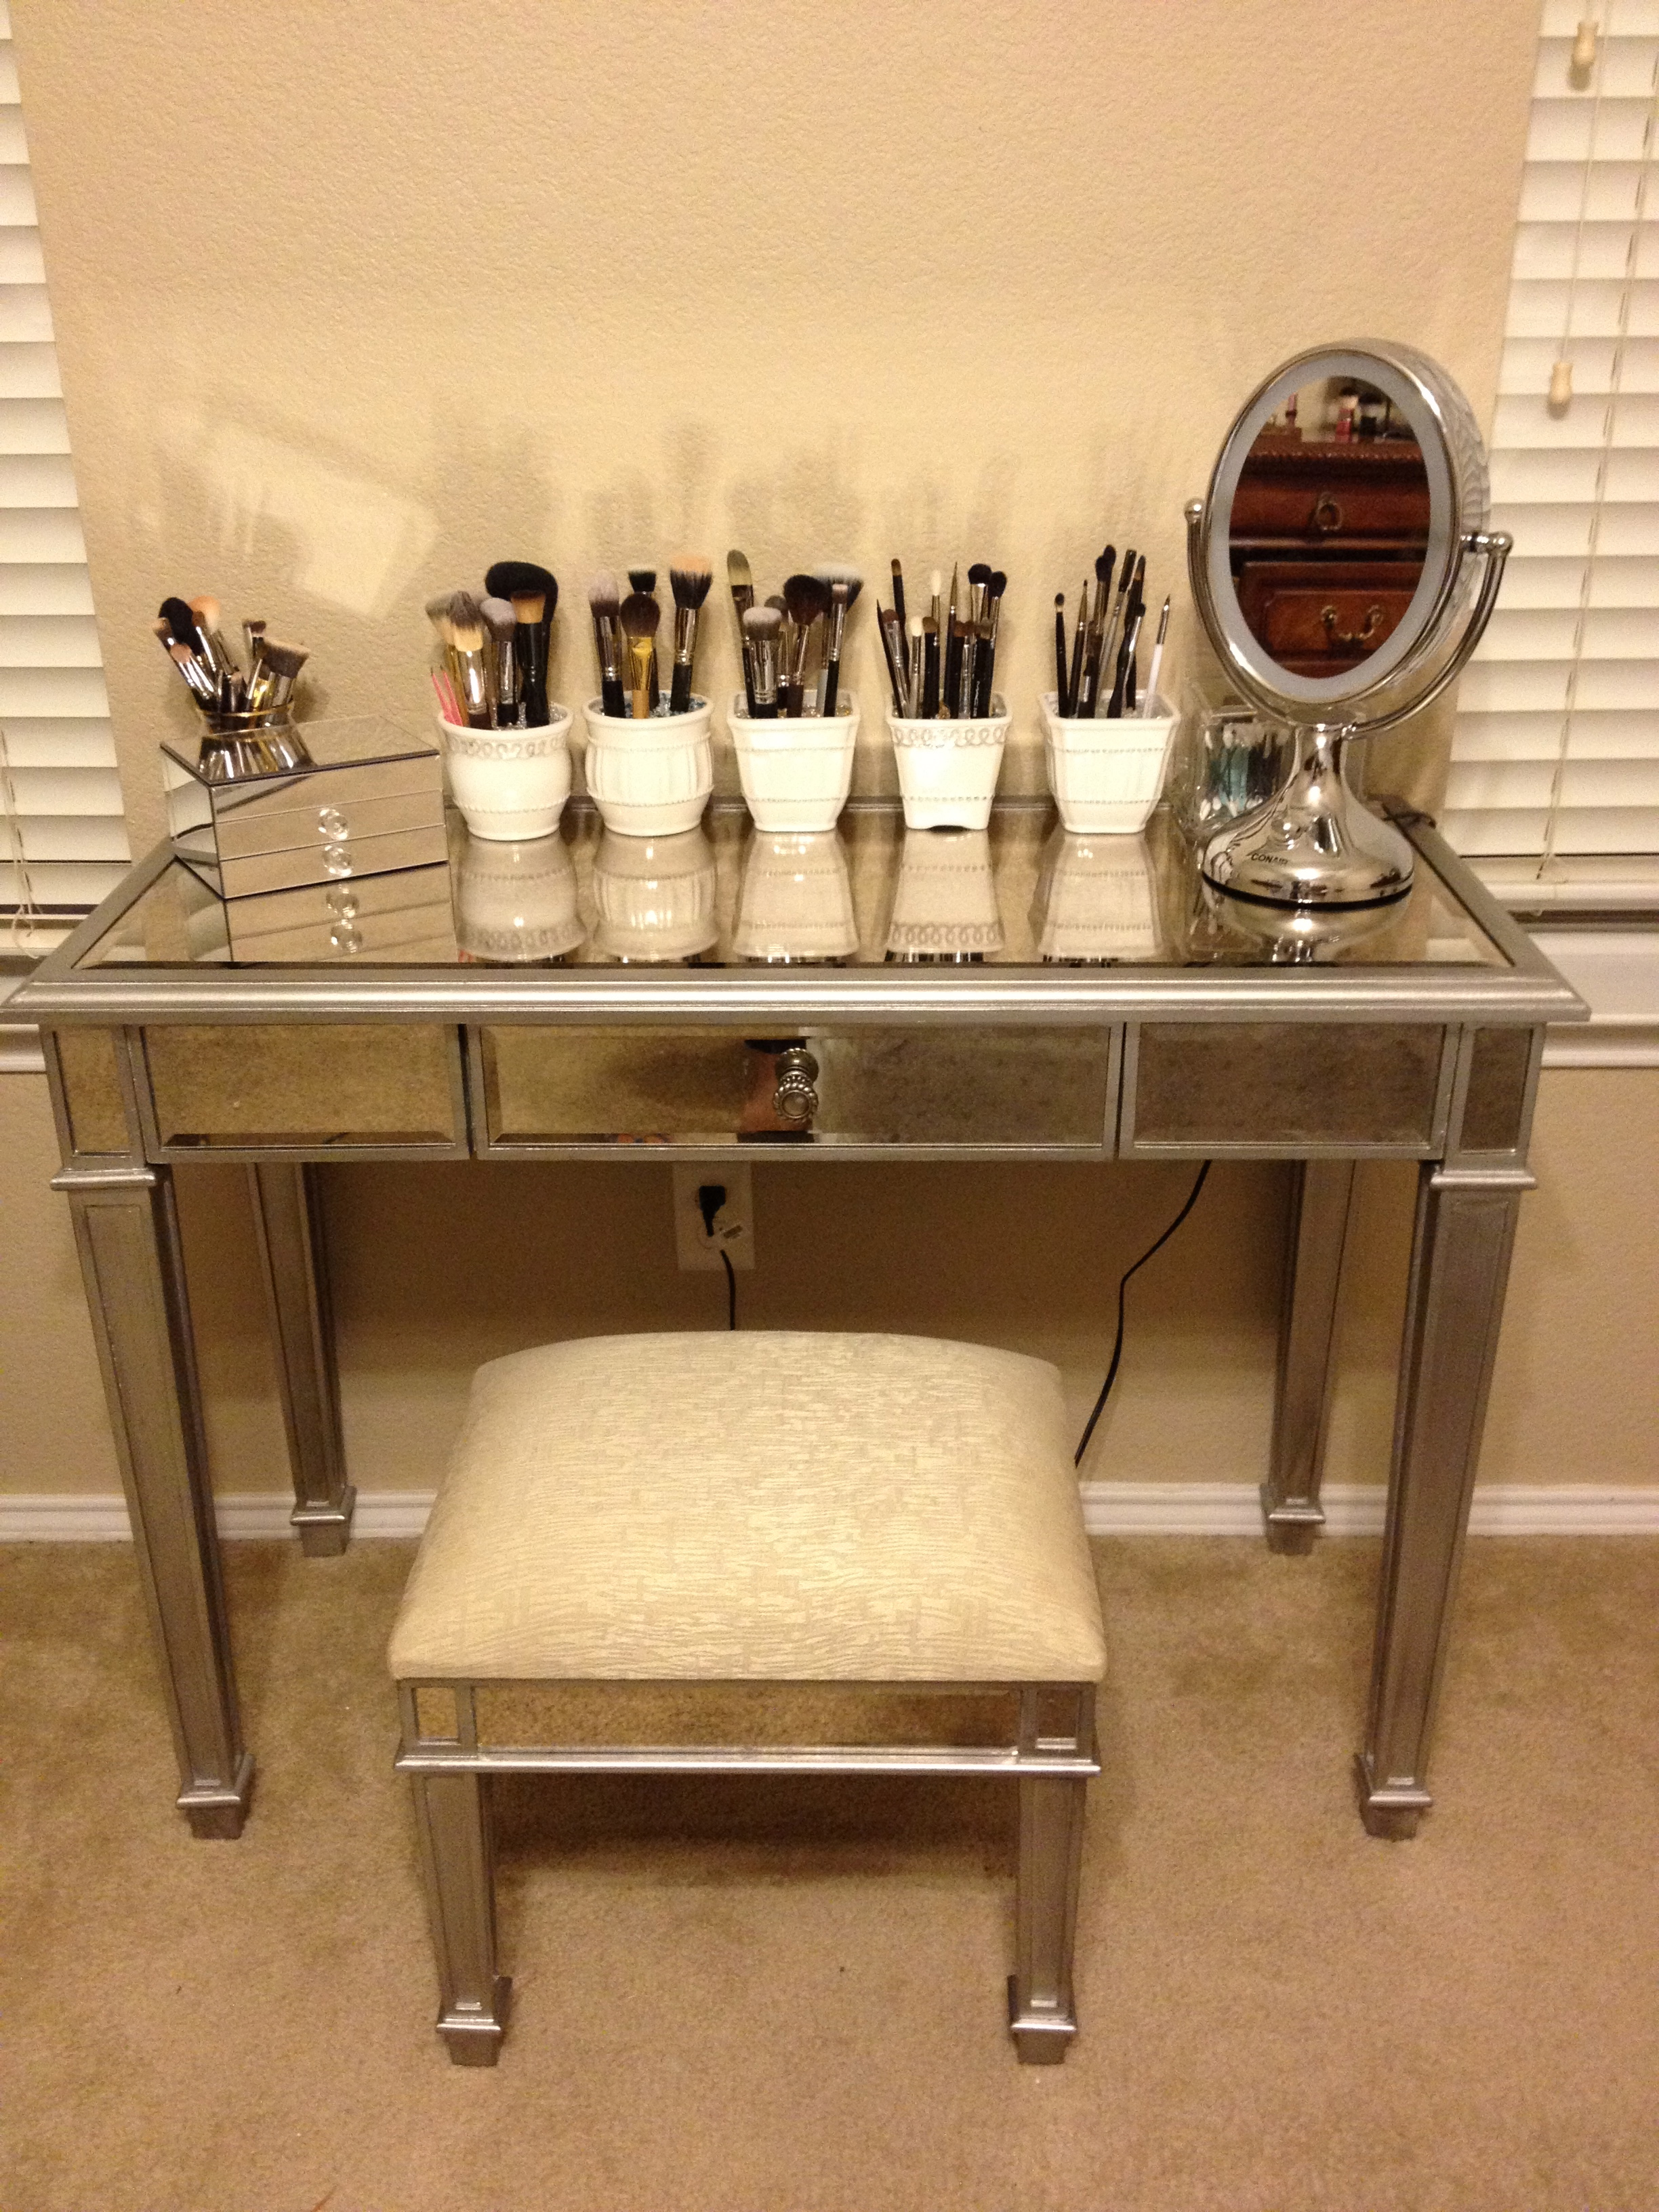 Alluring hayworth vanity mirrored vanity and ikea vanity also ikea rug hayworth rug ideas